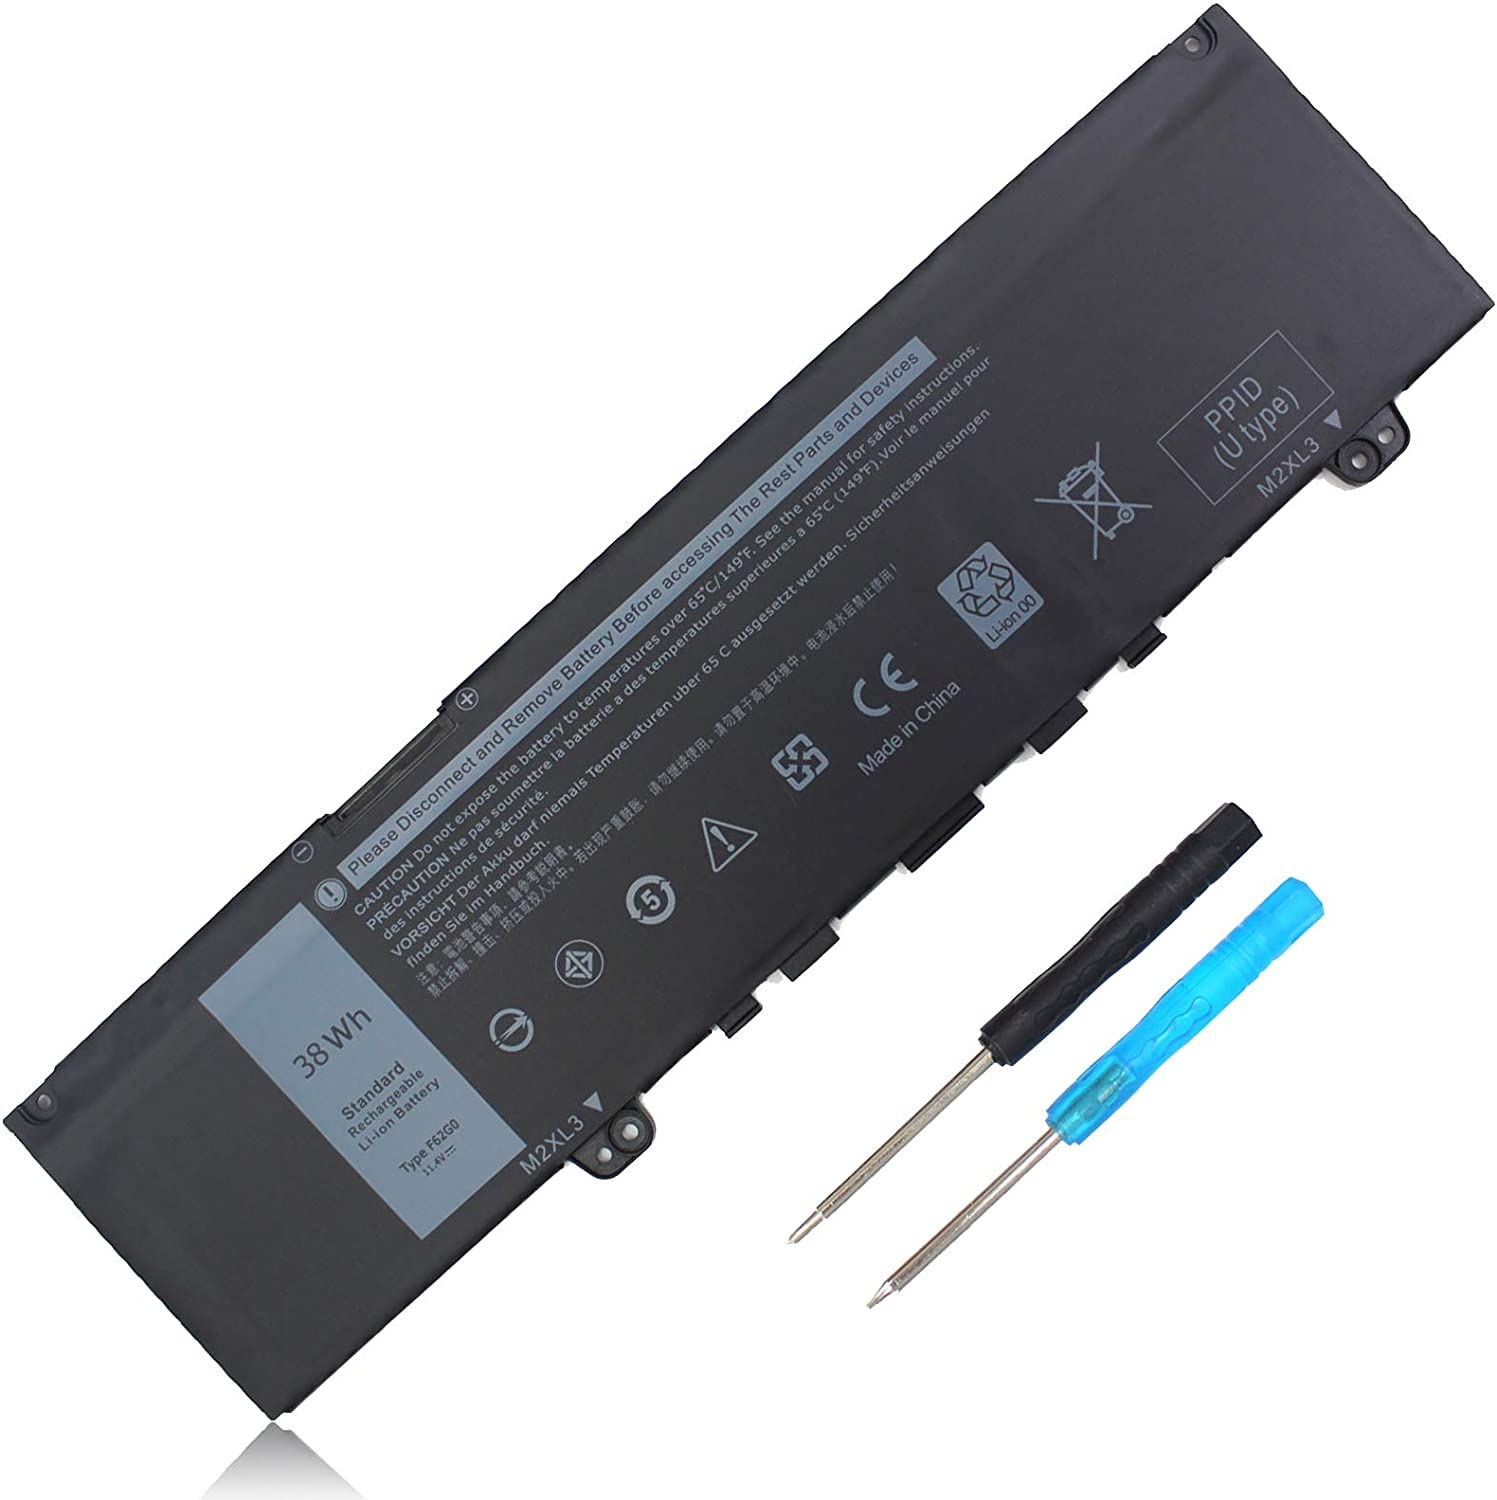 38WH Type F62G0 Laptop Battery Replacement for Dell Inspiron 7373 7370 5370 7380 7386 Vostro 5370 Series Notebook F62GO 039DY5 0YMYF6 0DHM0J 0YM5H6 0RPJC3 0TXWRR